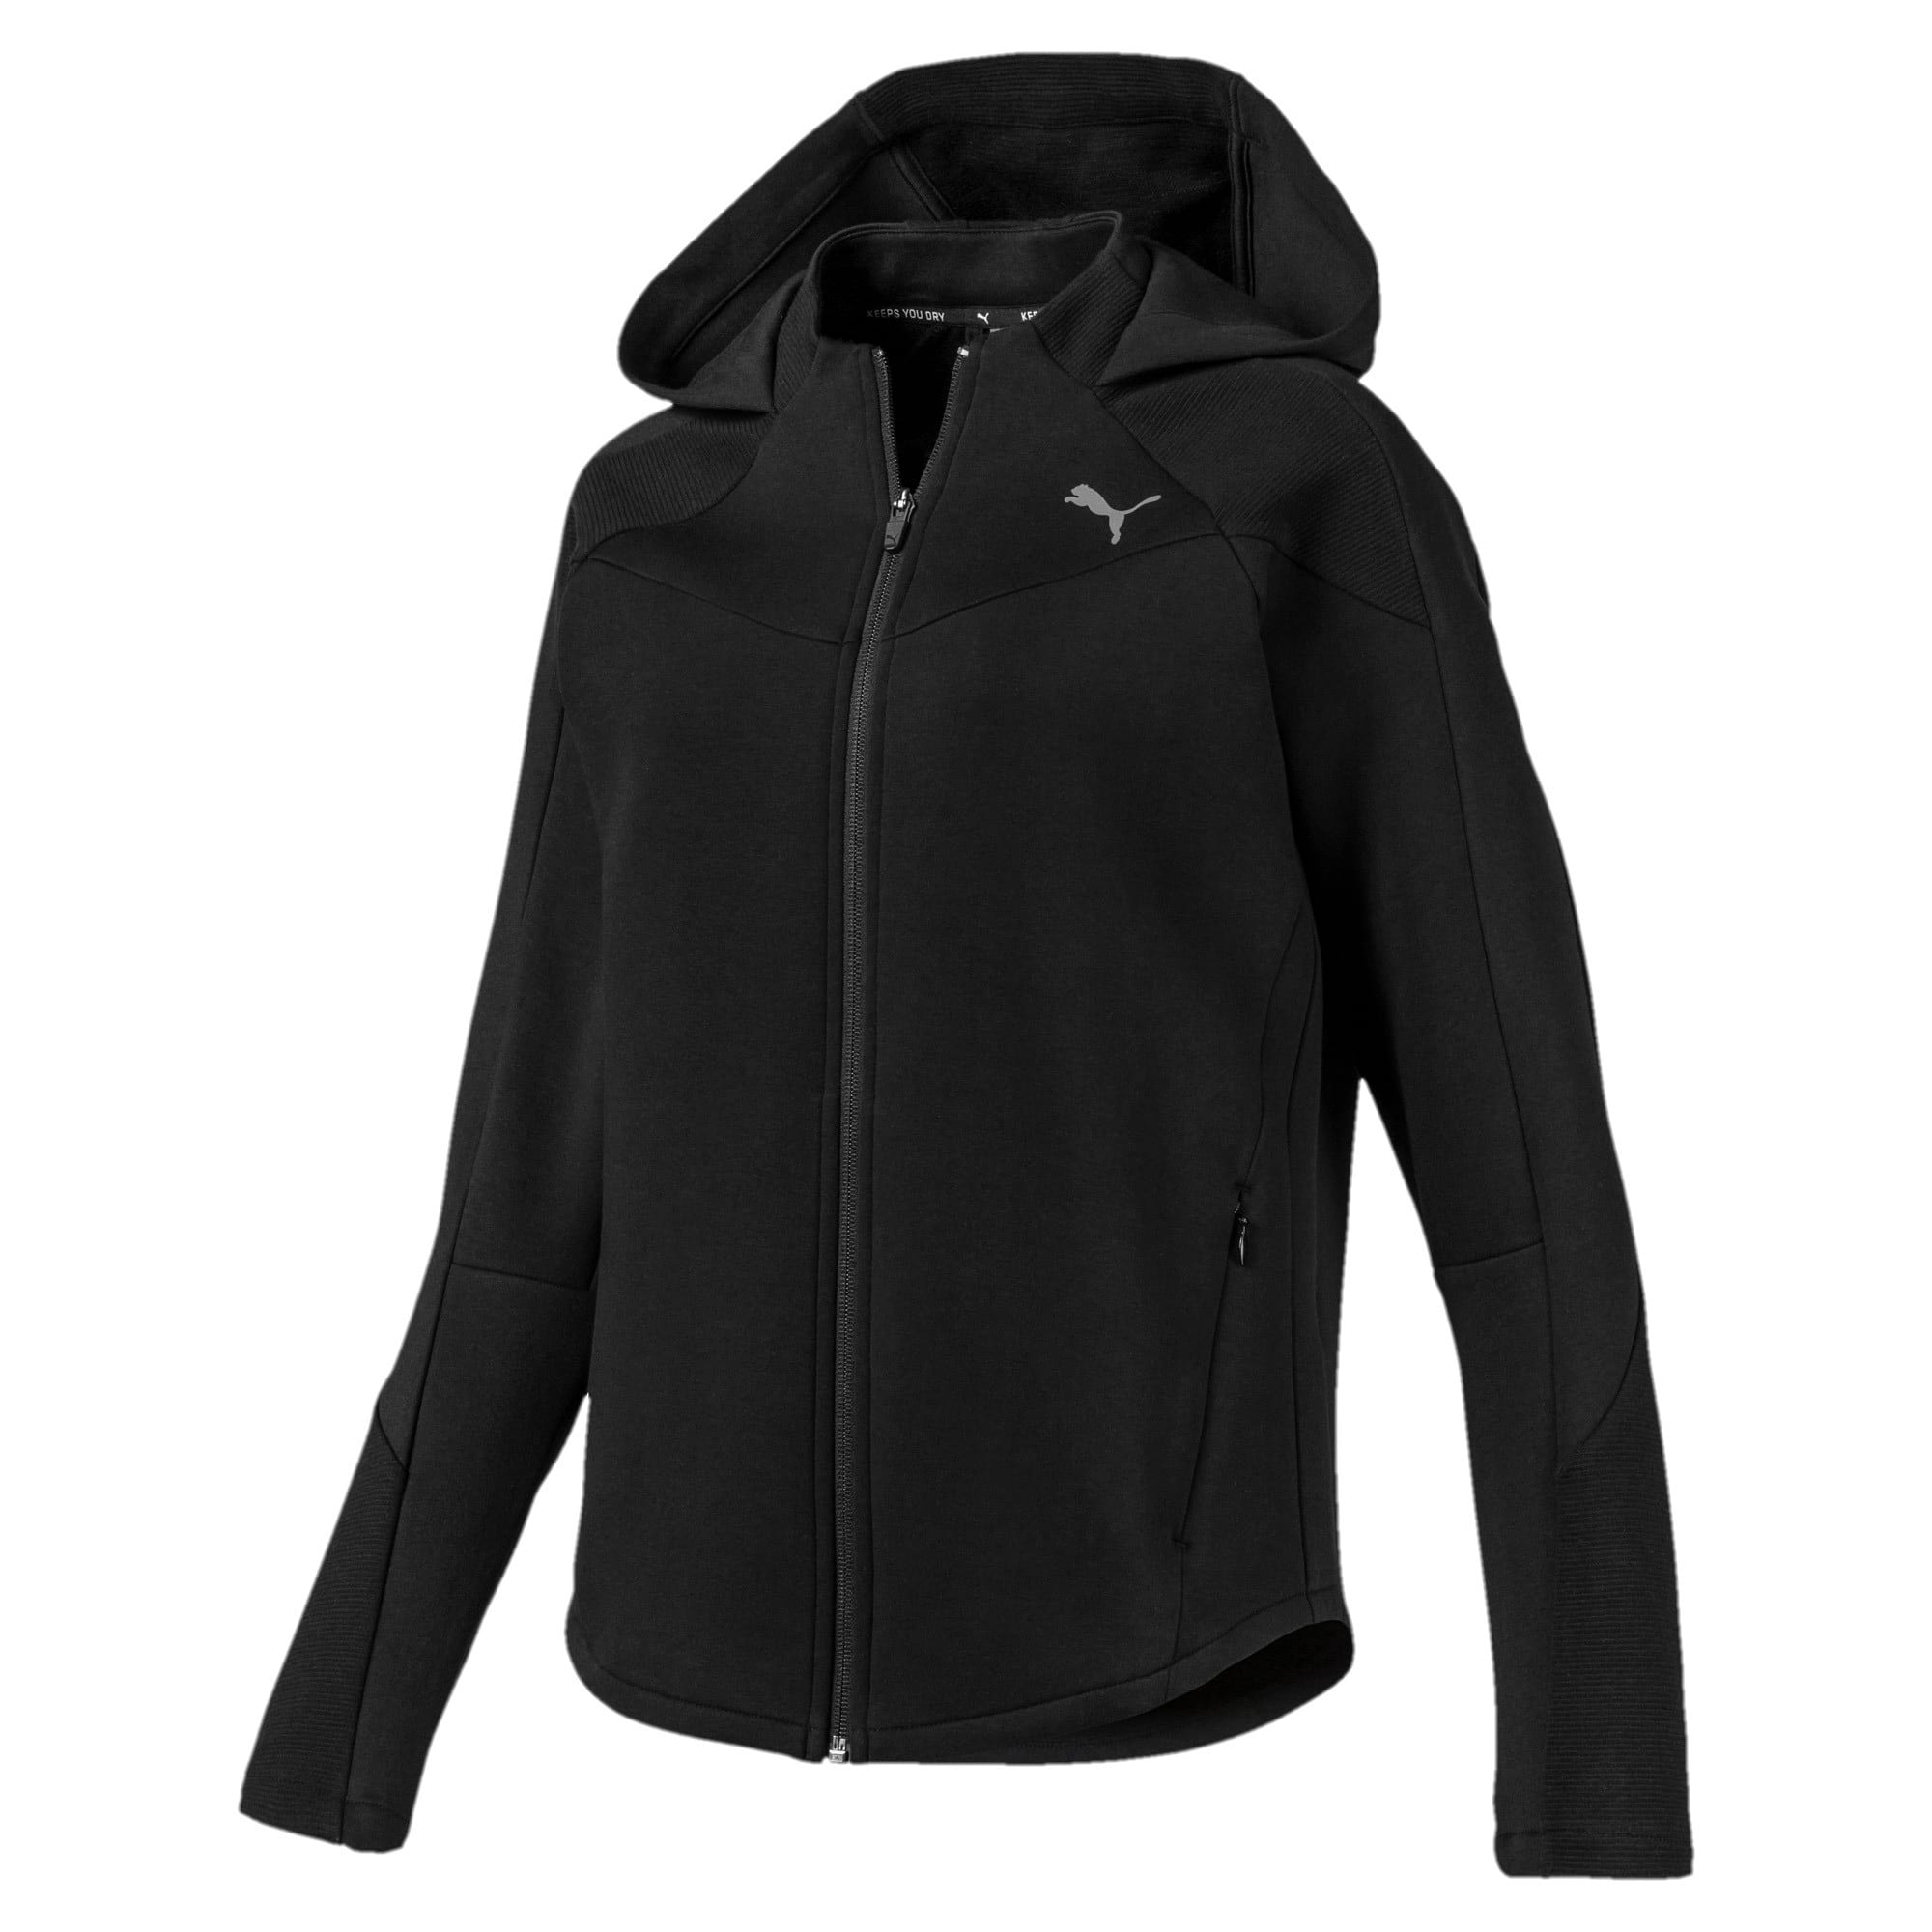 Thumbnail 4 of Evostripe Damen Sweatjacke mit Kapuze, Puma Black, medium